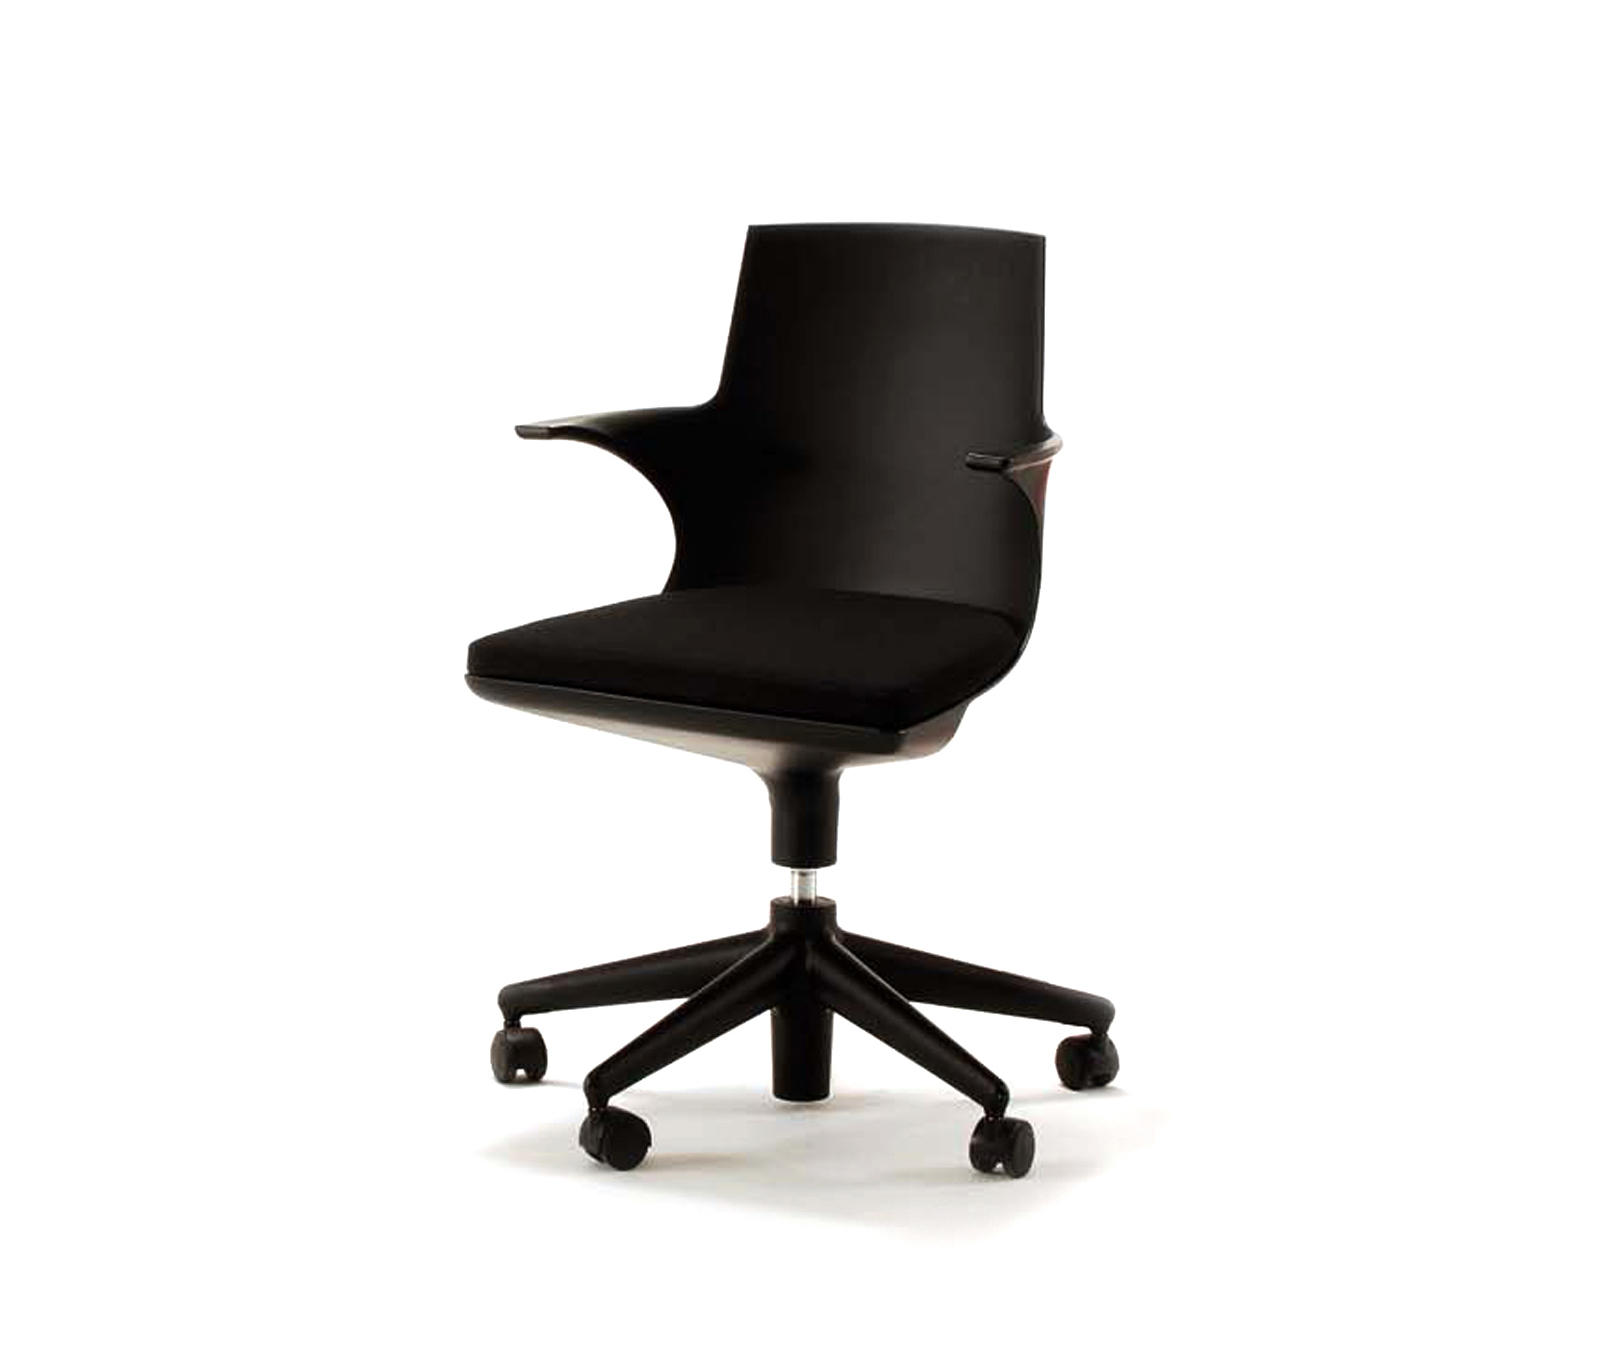 SPOON CHAIR Task chairs from Kartell